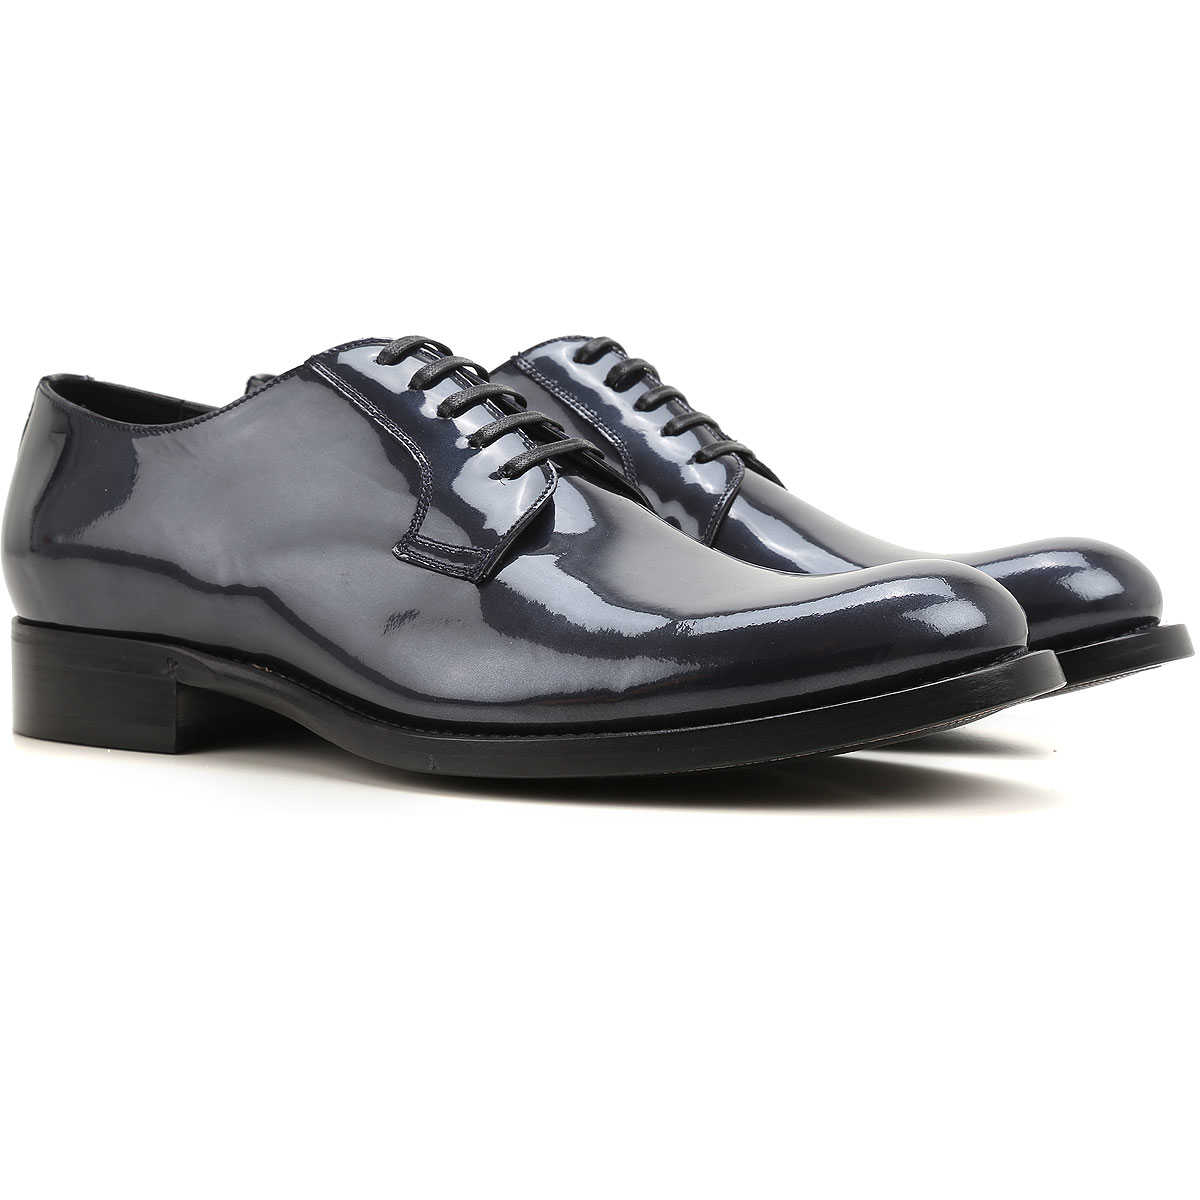 Dolce & Gabbana Lace Up Shoes for Men Oxfords Derbies and Brogues On Sale in Outlet SE - GOOFASH